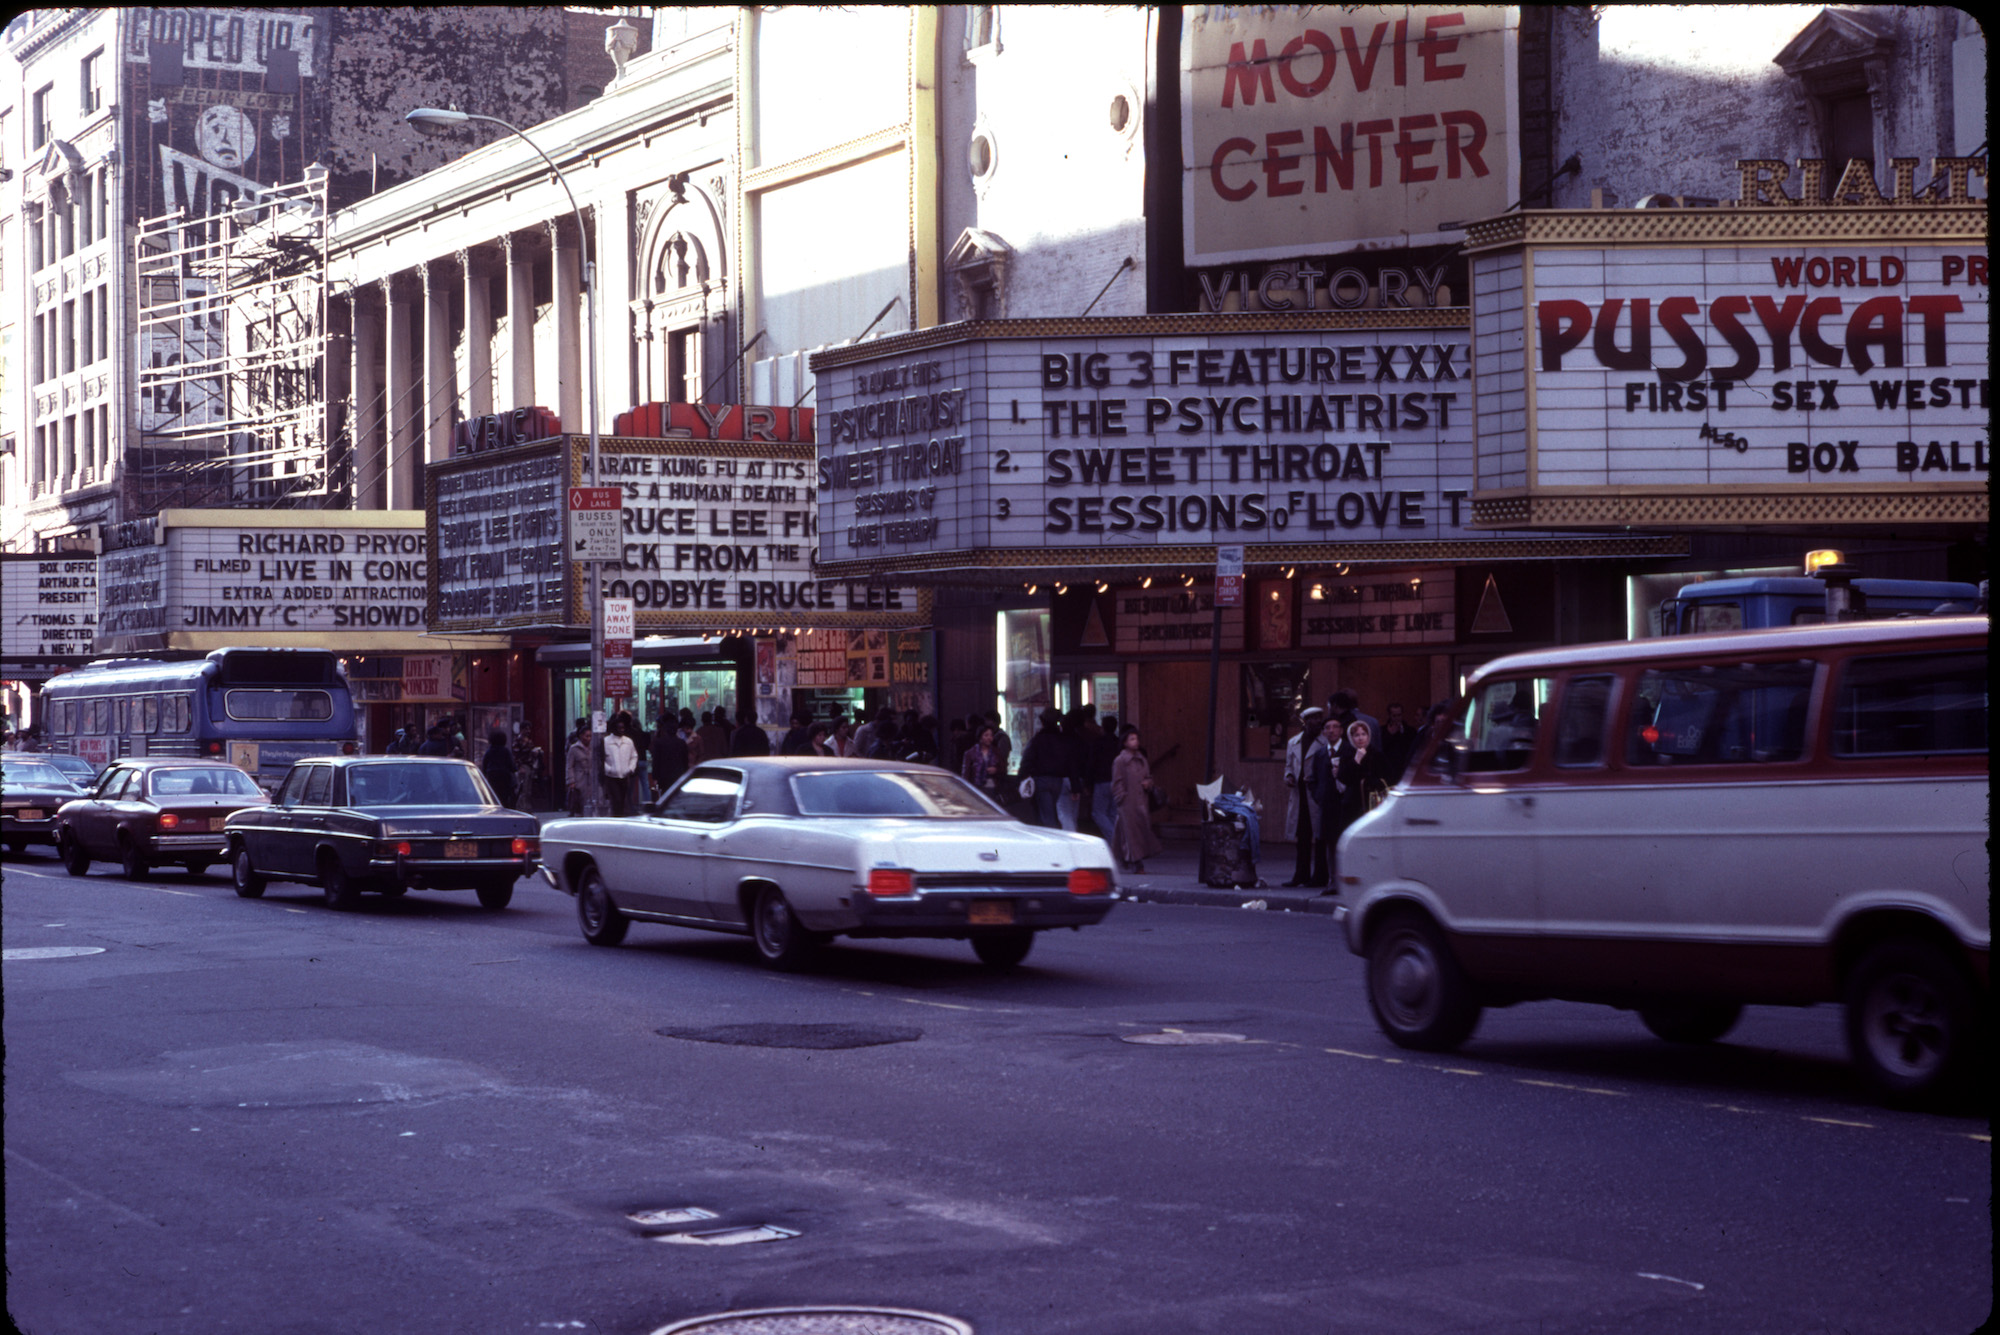 New York City 1979 - Broadway What's on?